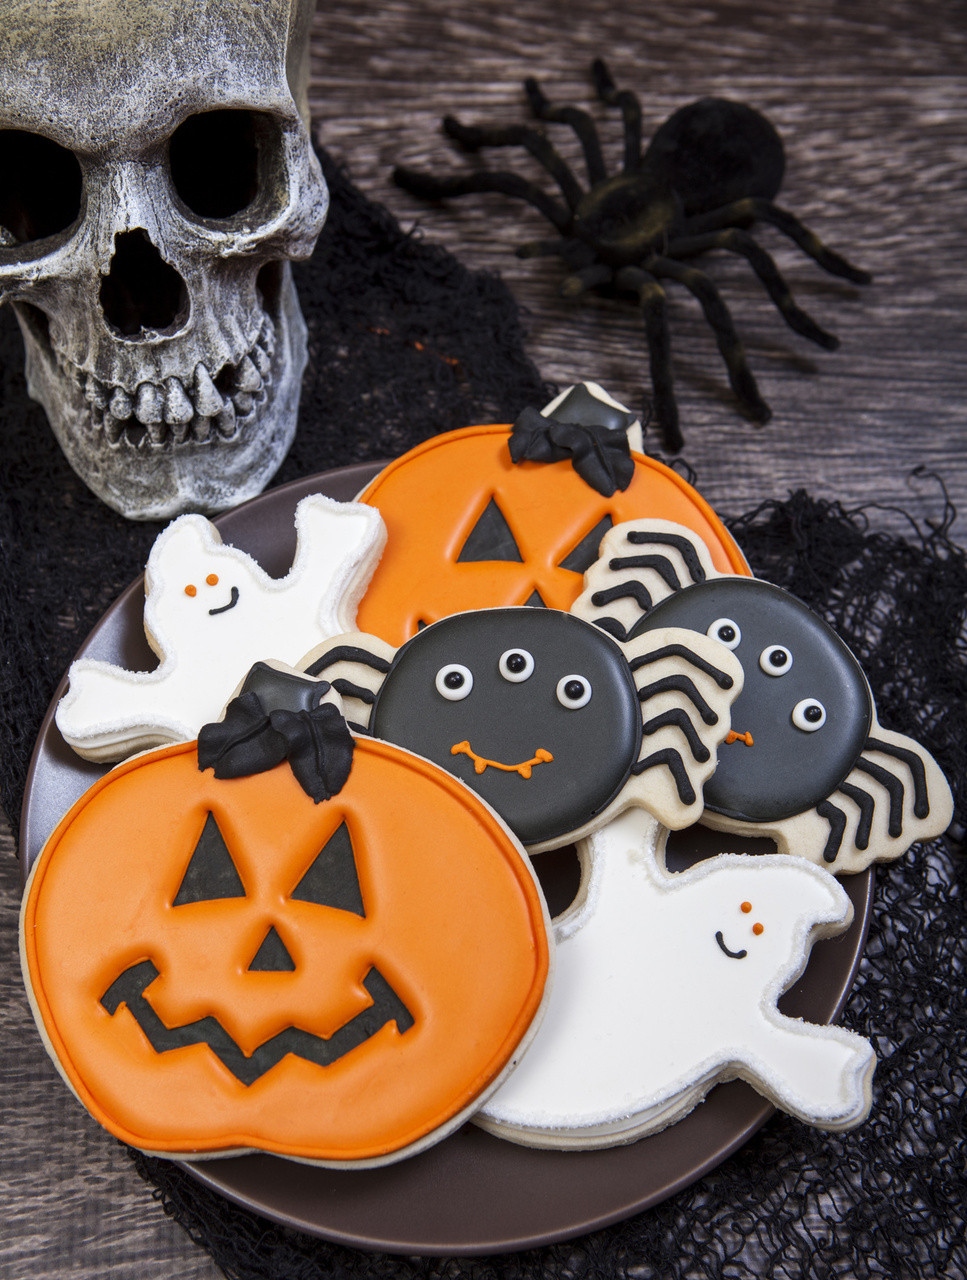 Halloween Cookies Decorating  Spooky Cookie Halloween Cookie Decorations